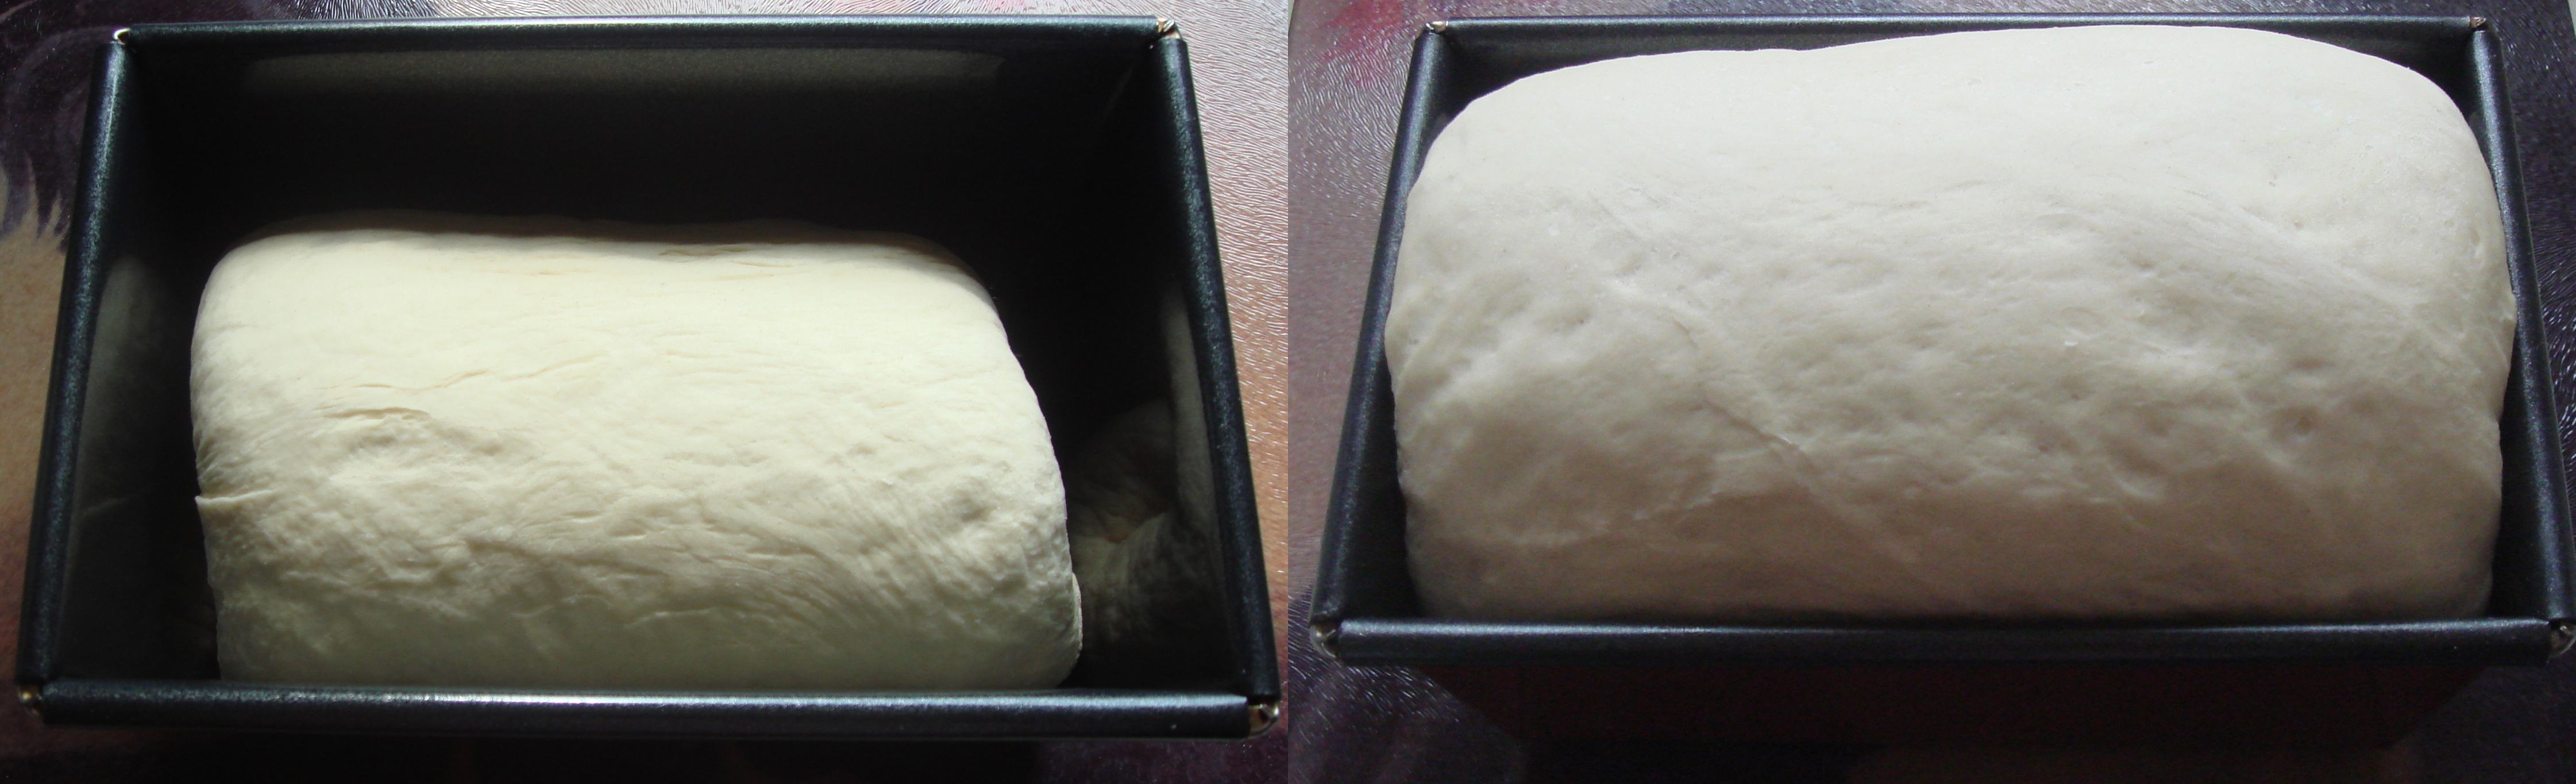 two images of bread, one risen and ready to be baked